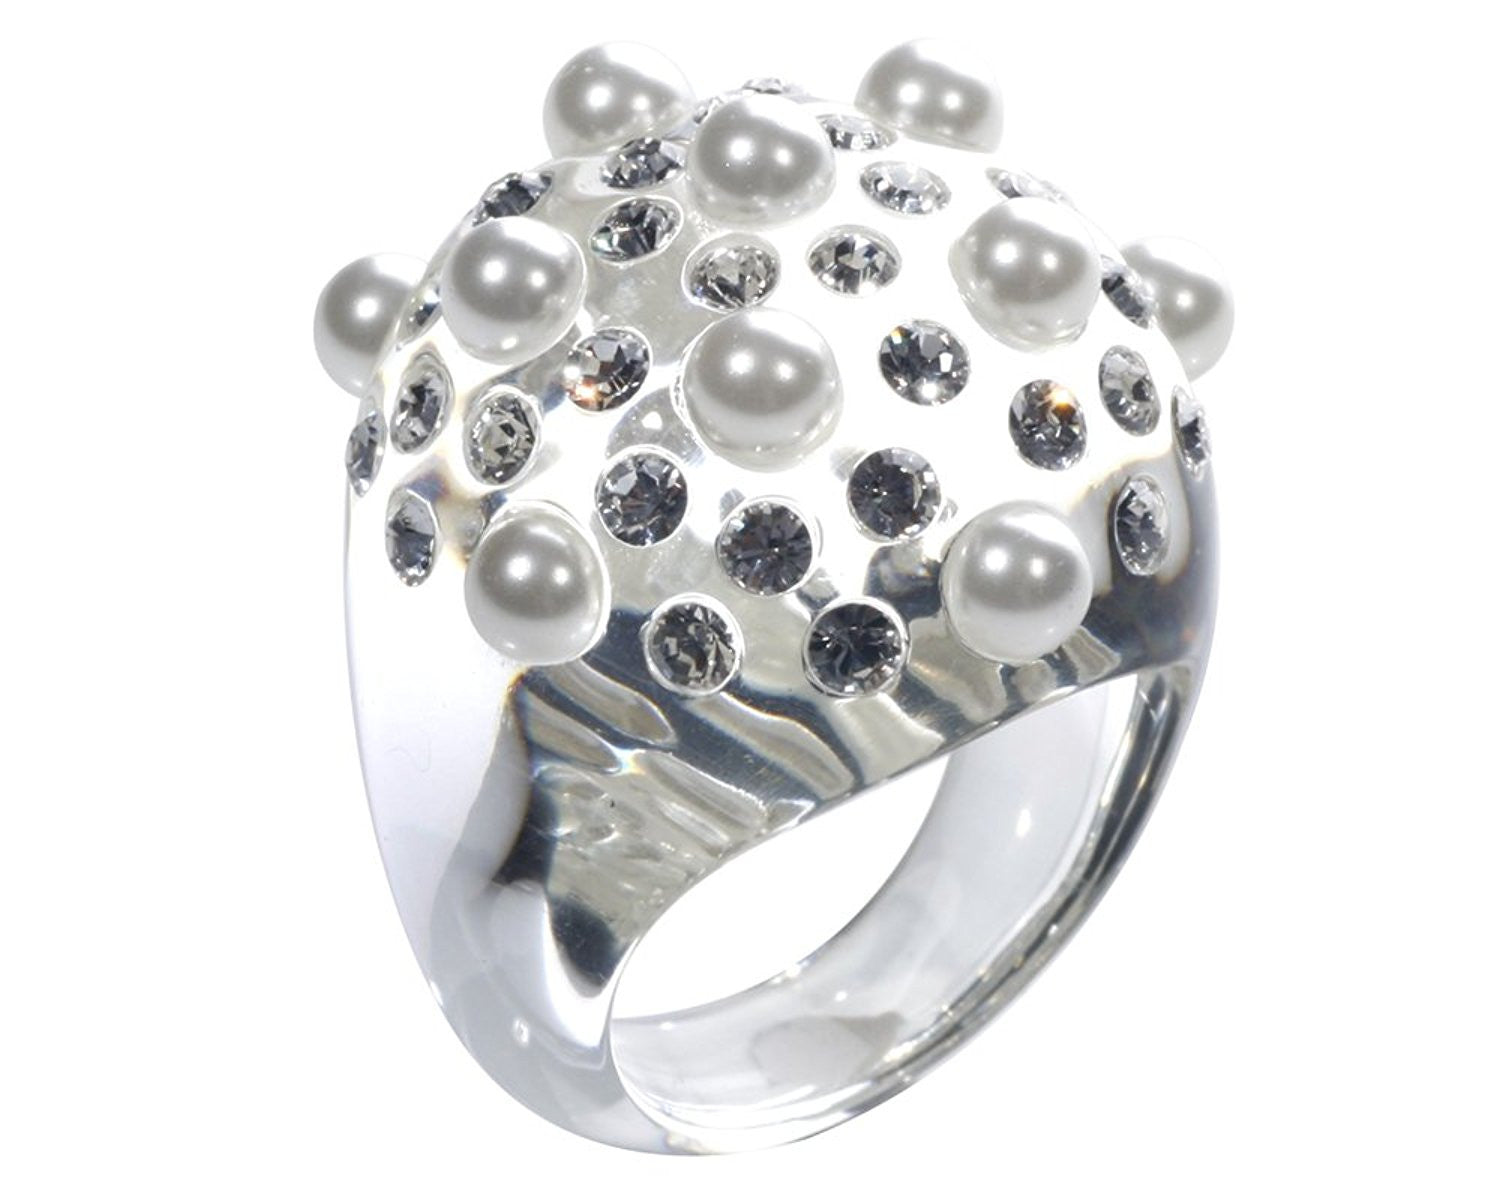 Clear Dome Ring With Pearls and Swarovski Crystals